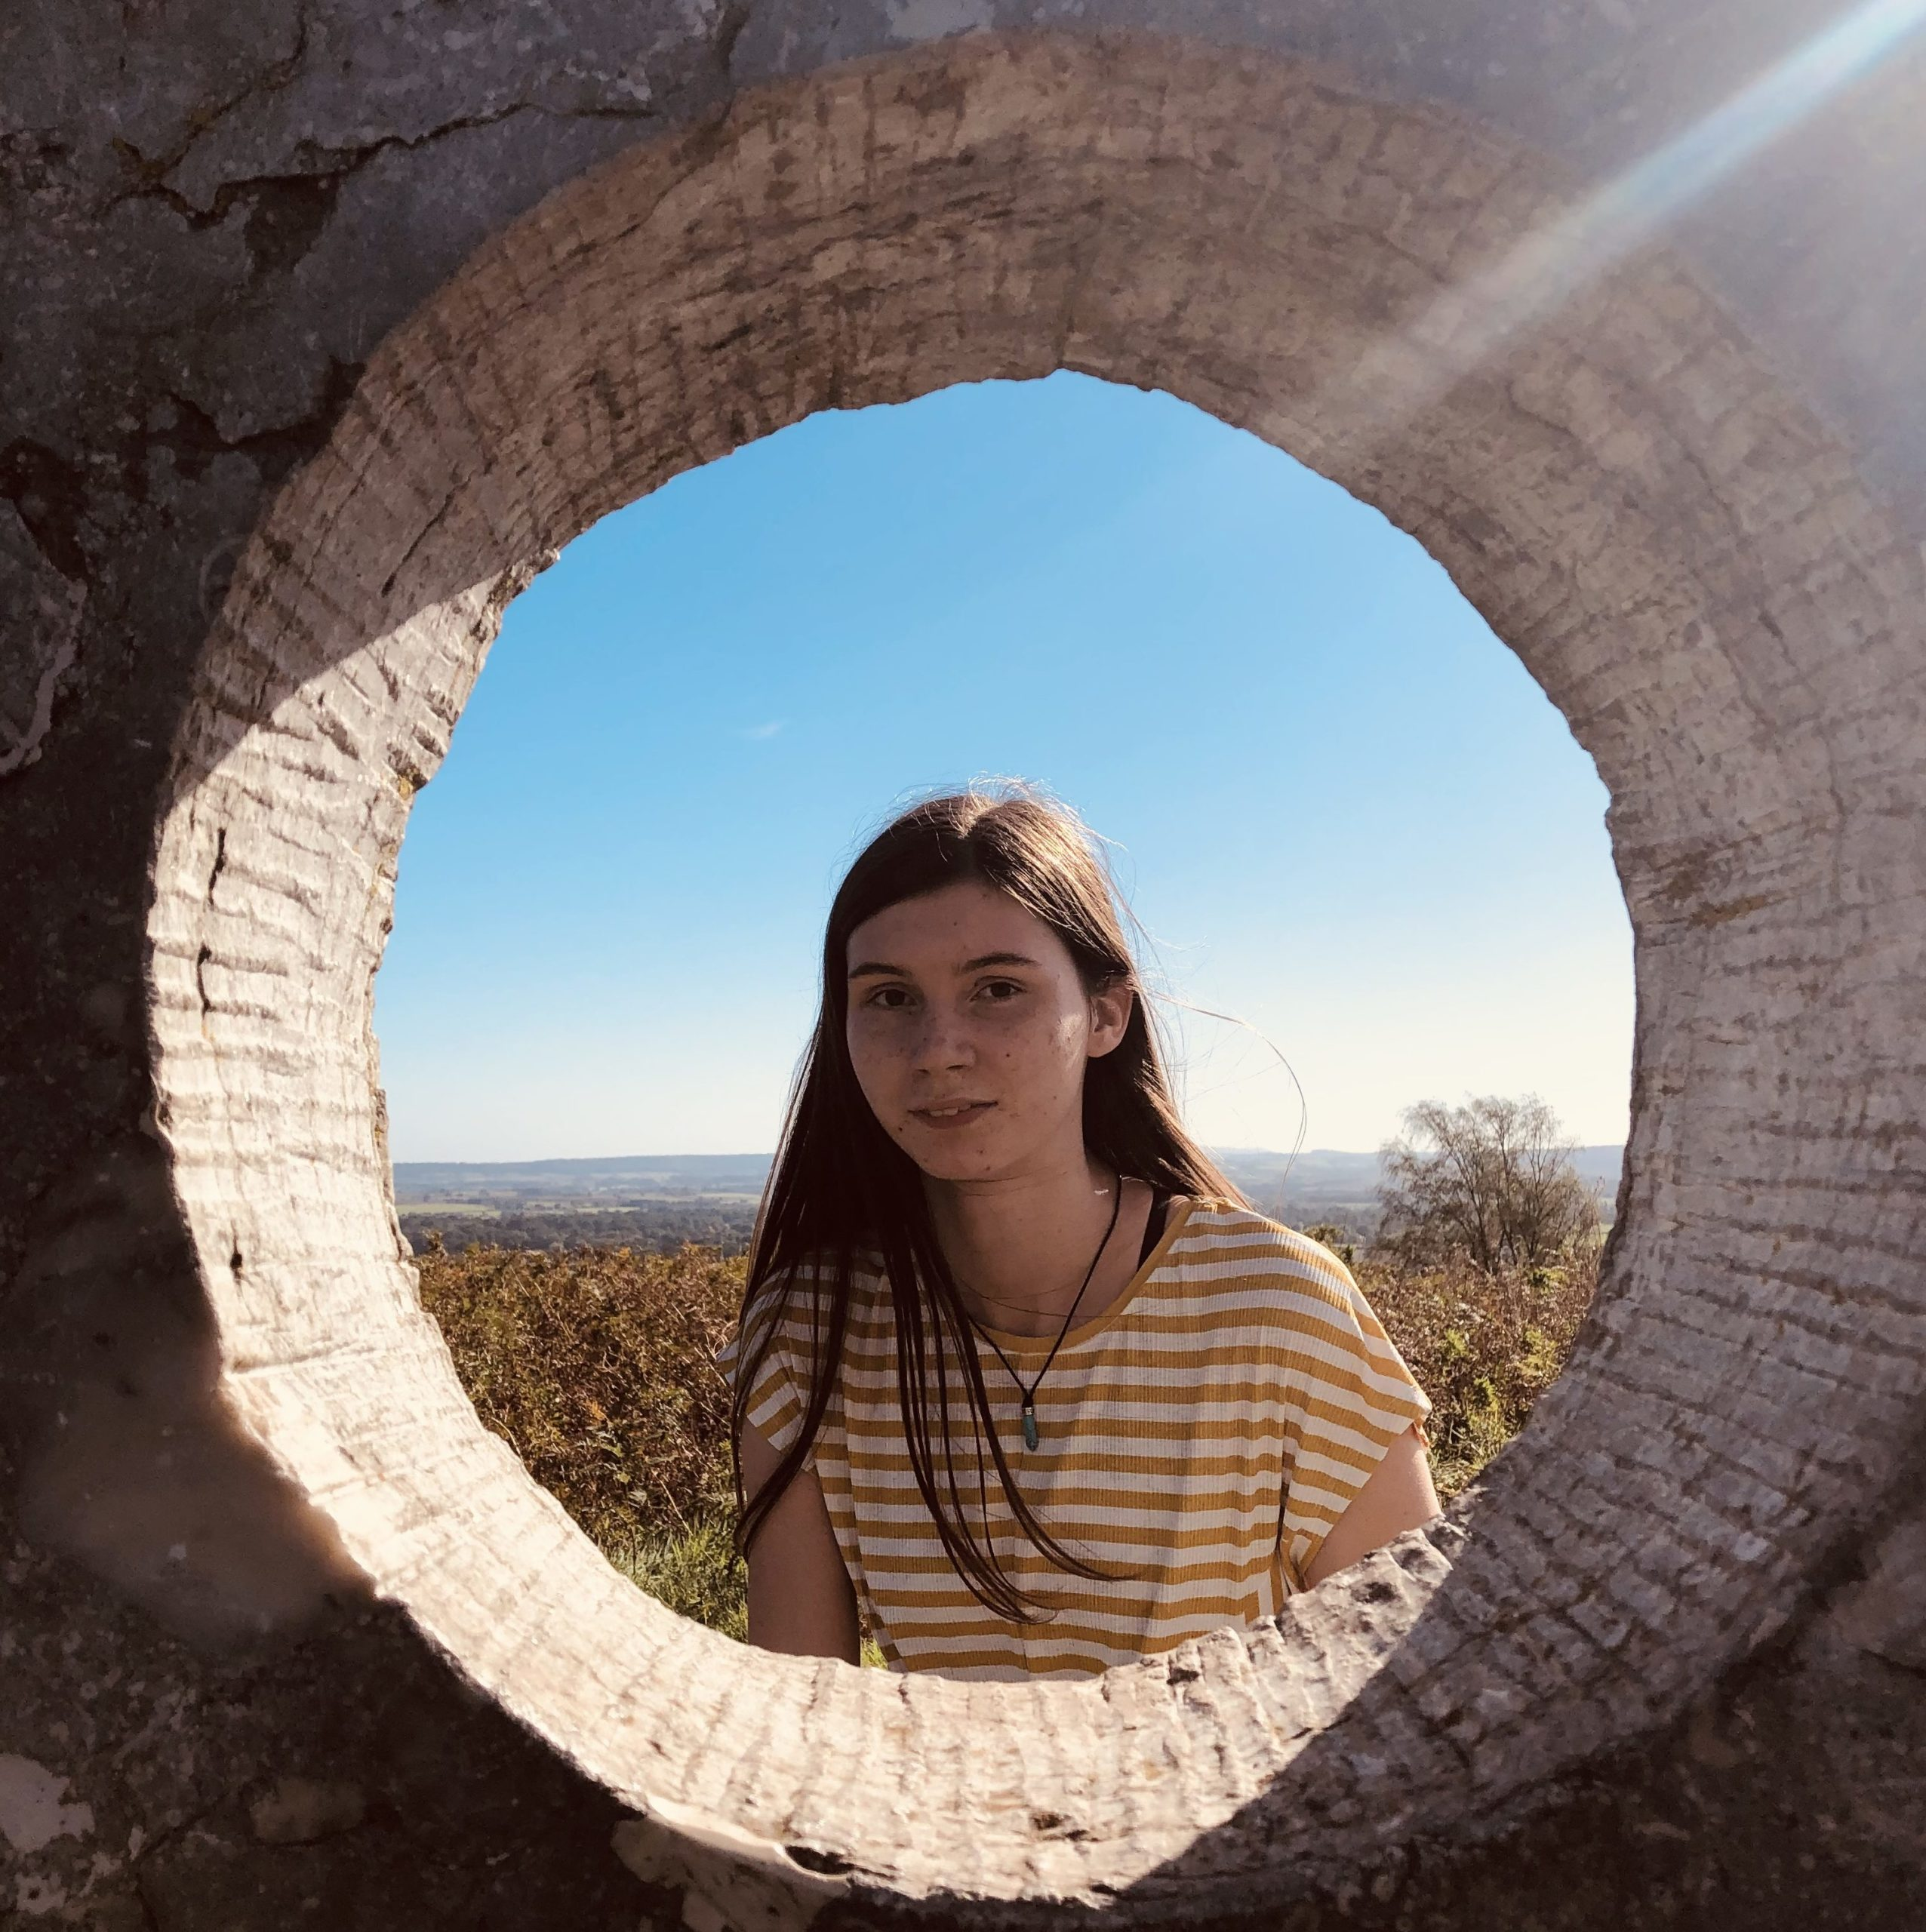 The photo is taken through a hole in a rock to show Sophie, a white person with long brown hair smiling at the camera. She is wearing a yellow t-shirt and blue necklace and there are hills and blue sky visible in the background.